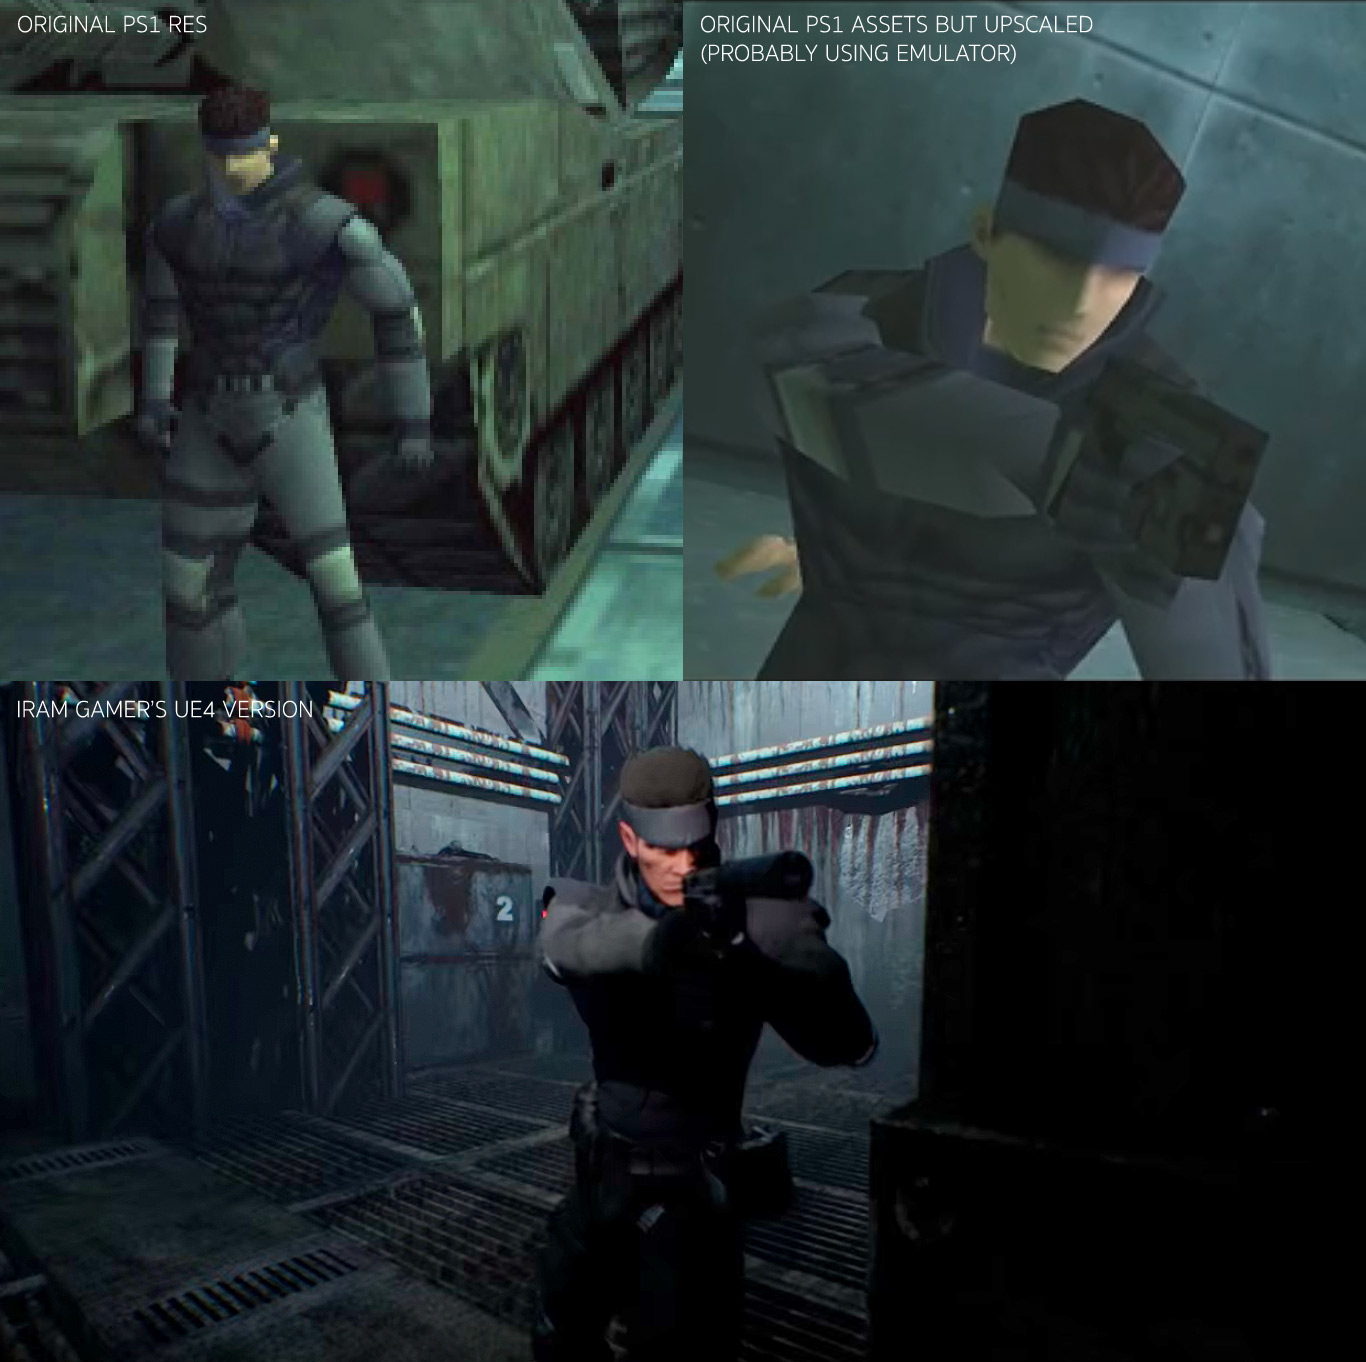 metal gear ps1 playstation and unreal engine 4 comparison